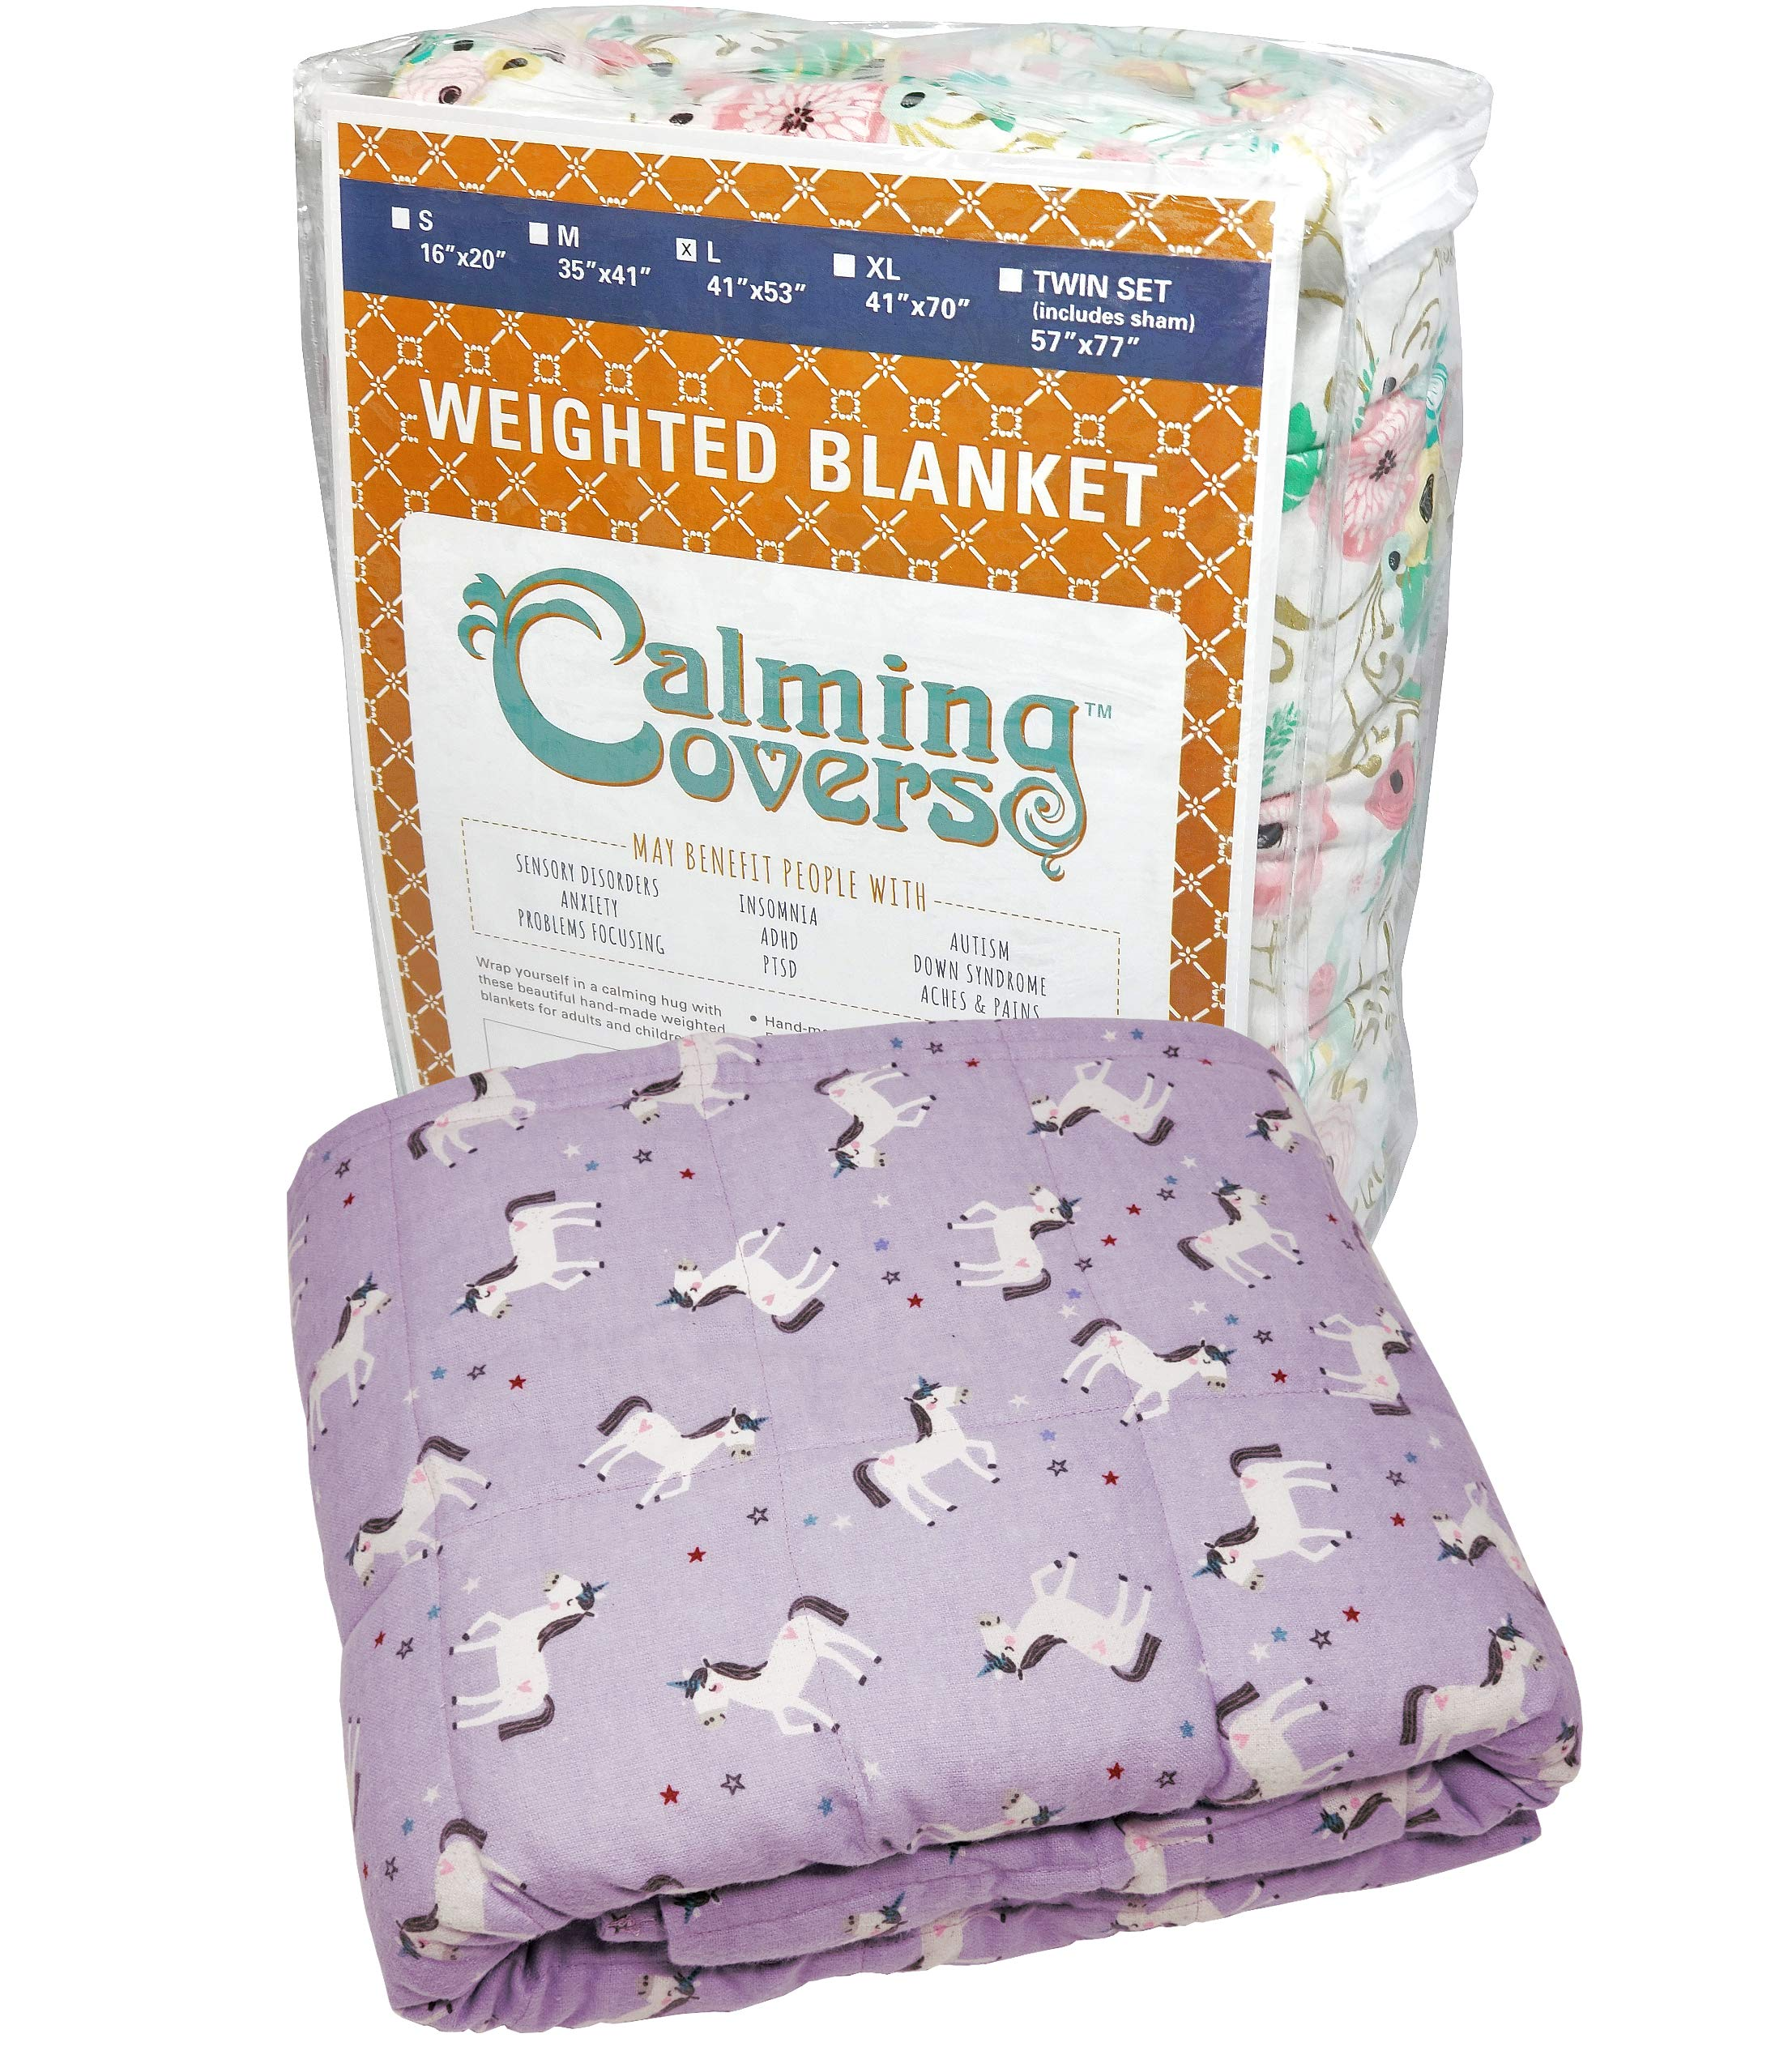 The Swanky Stitchery Designer Weighted Blanket kids (adult) | Dozens cute styles in many sizes | Gravity blankets may help relieve anxiety, stress & insomnia | Style - Purple Unicorn Flannel - 6 lbs